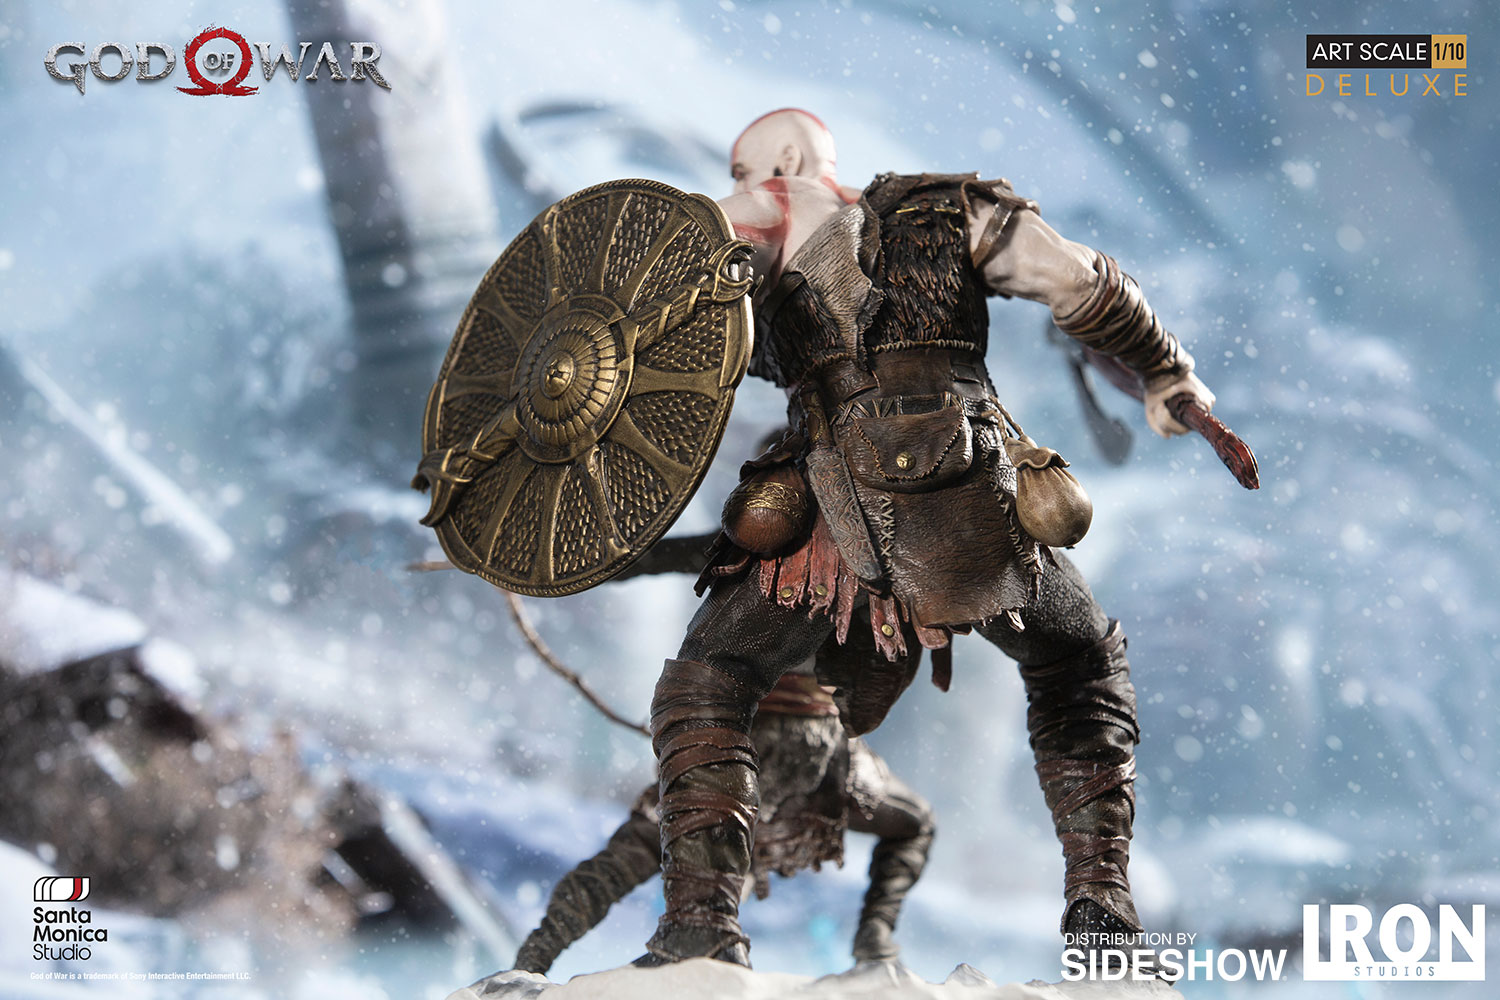 god of war deluxe edition worth it